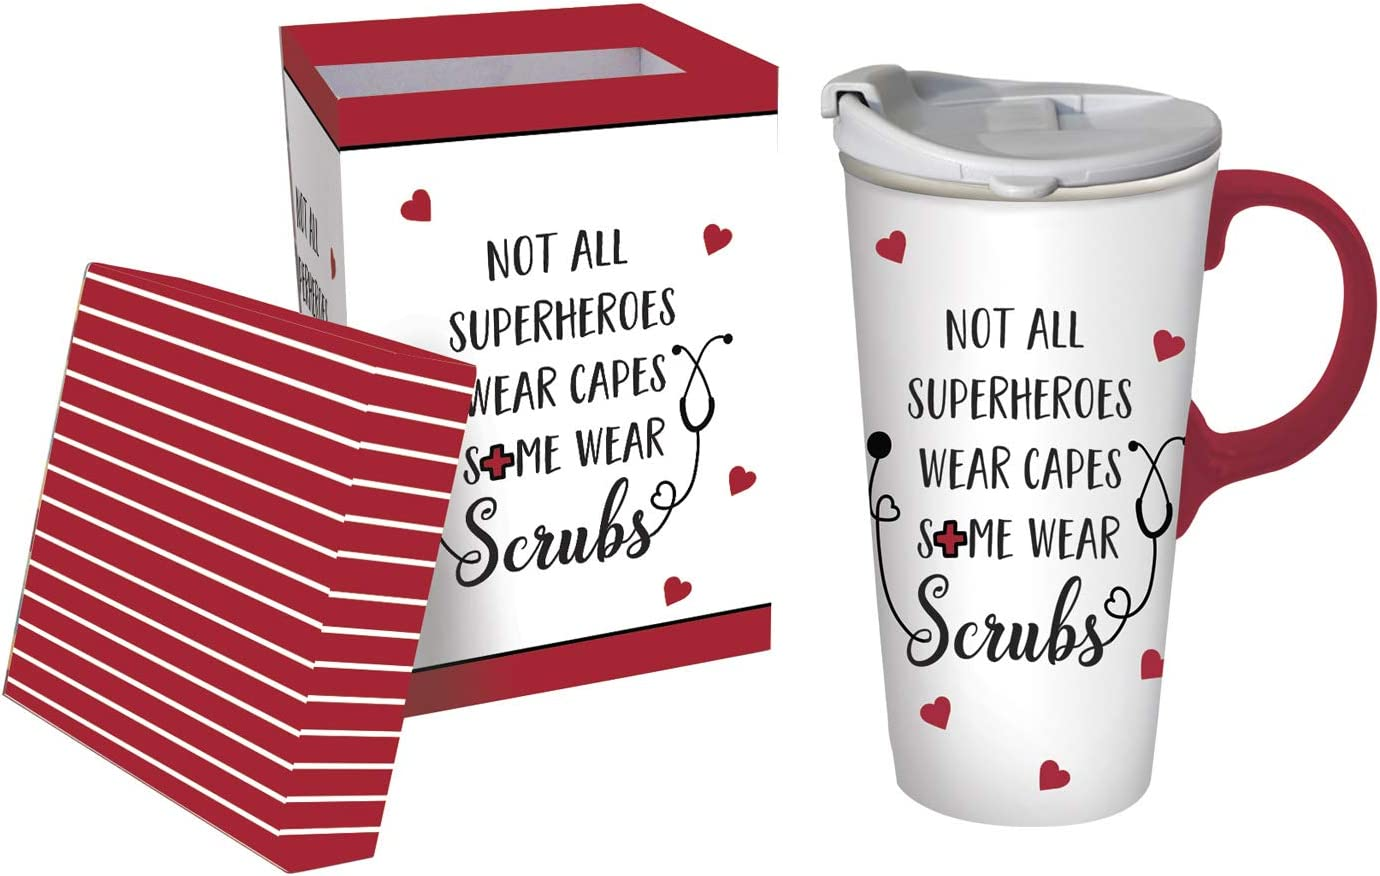 Cypress Home Ceramic Travel Cup, 17 Oz, With box, Scrubs